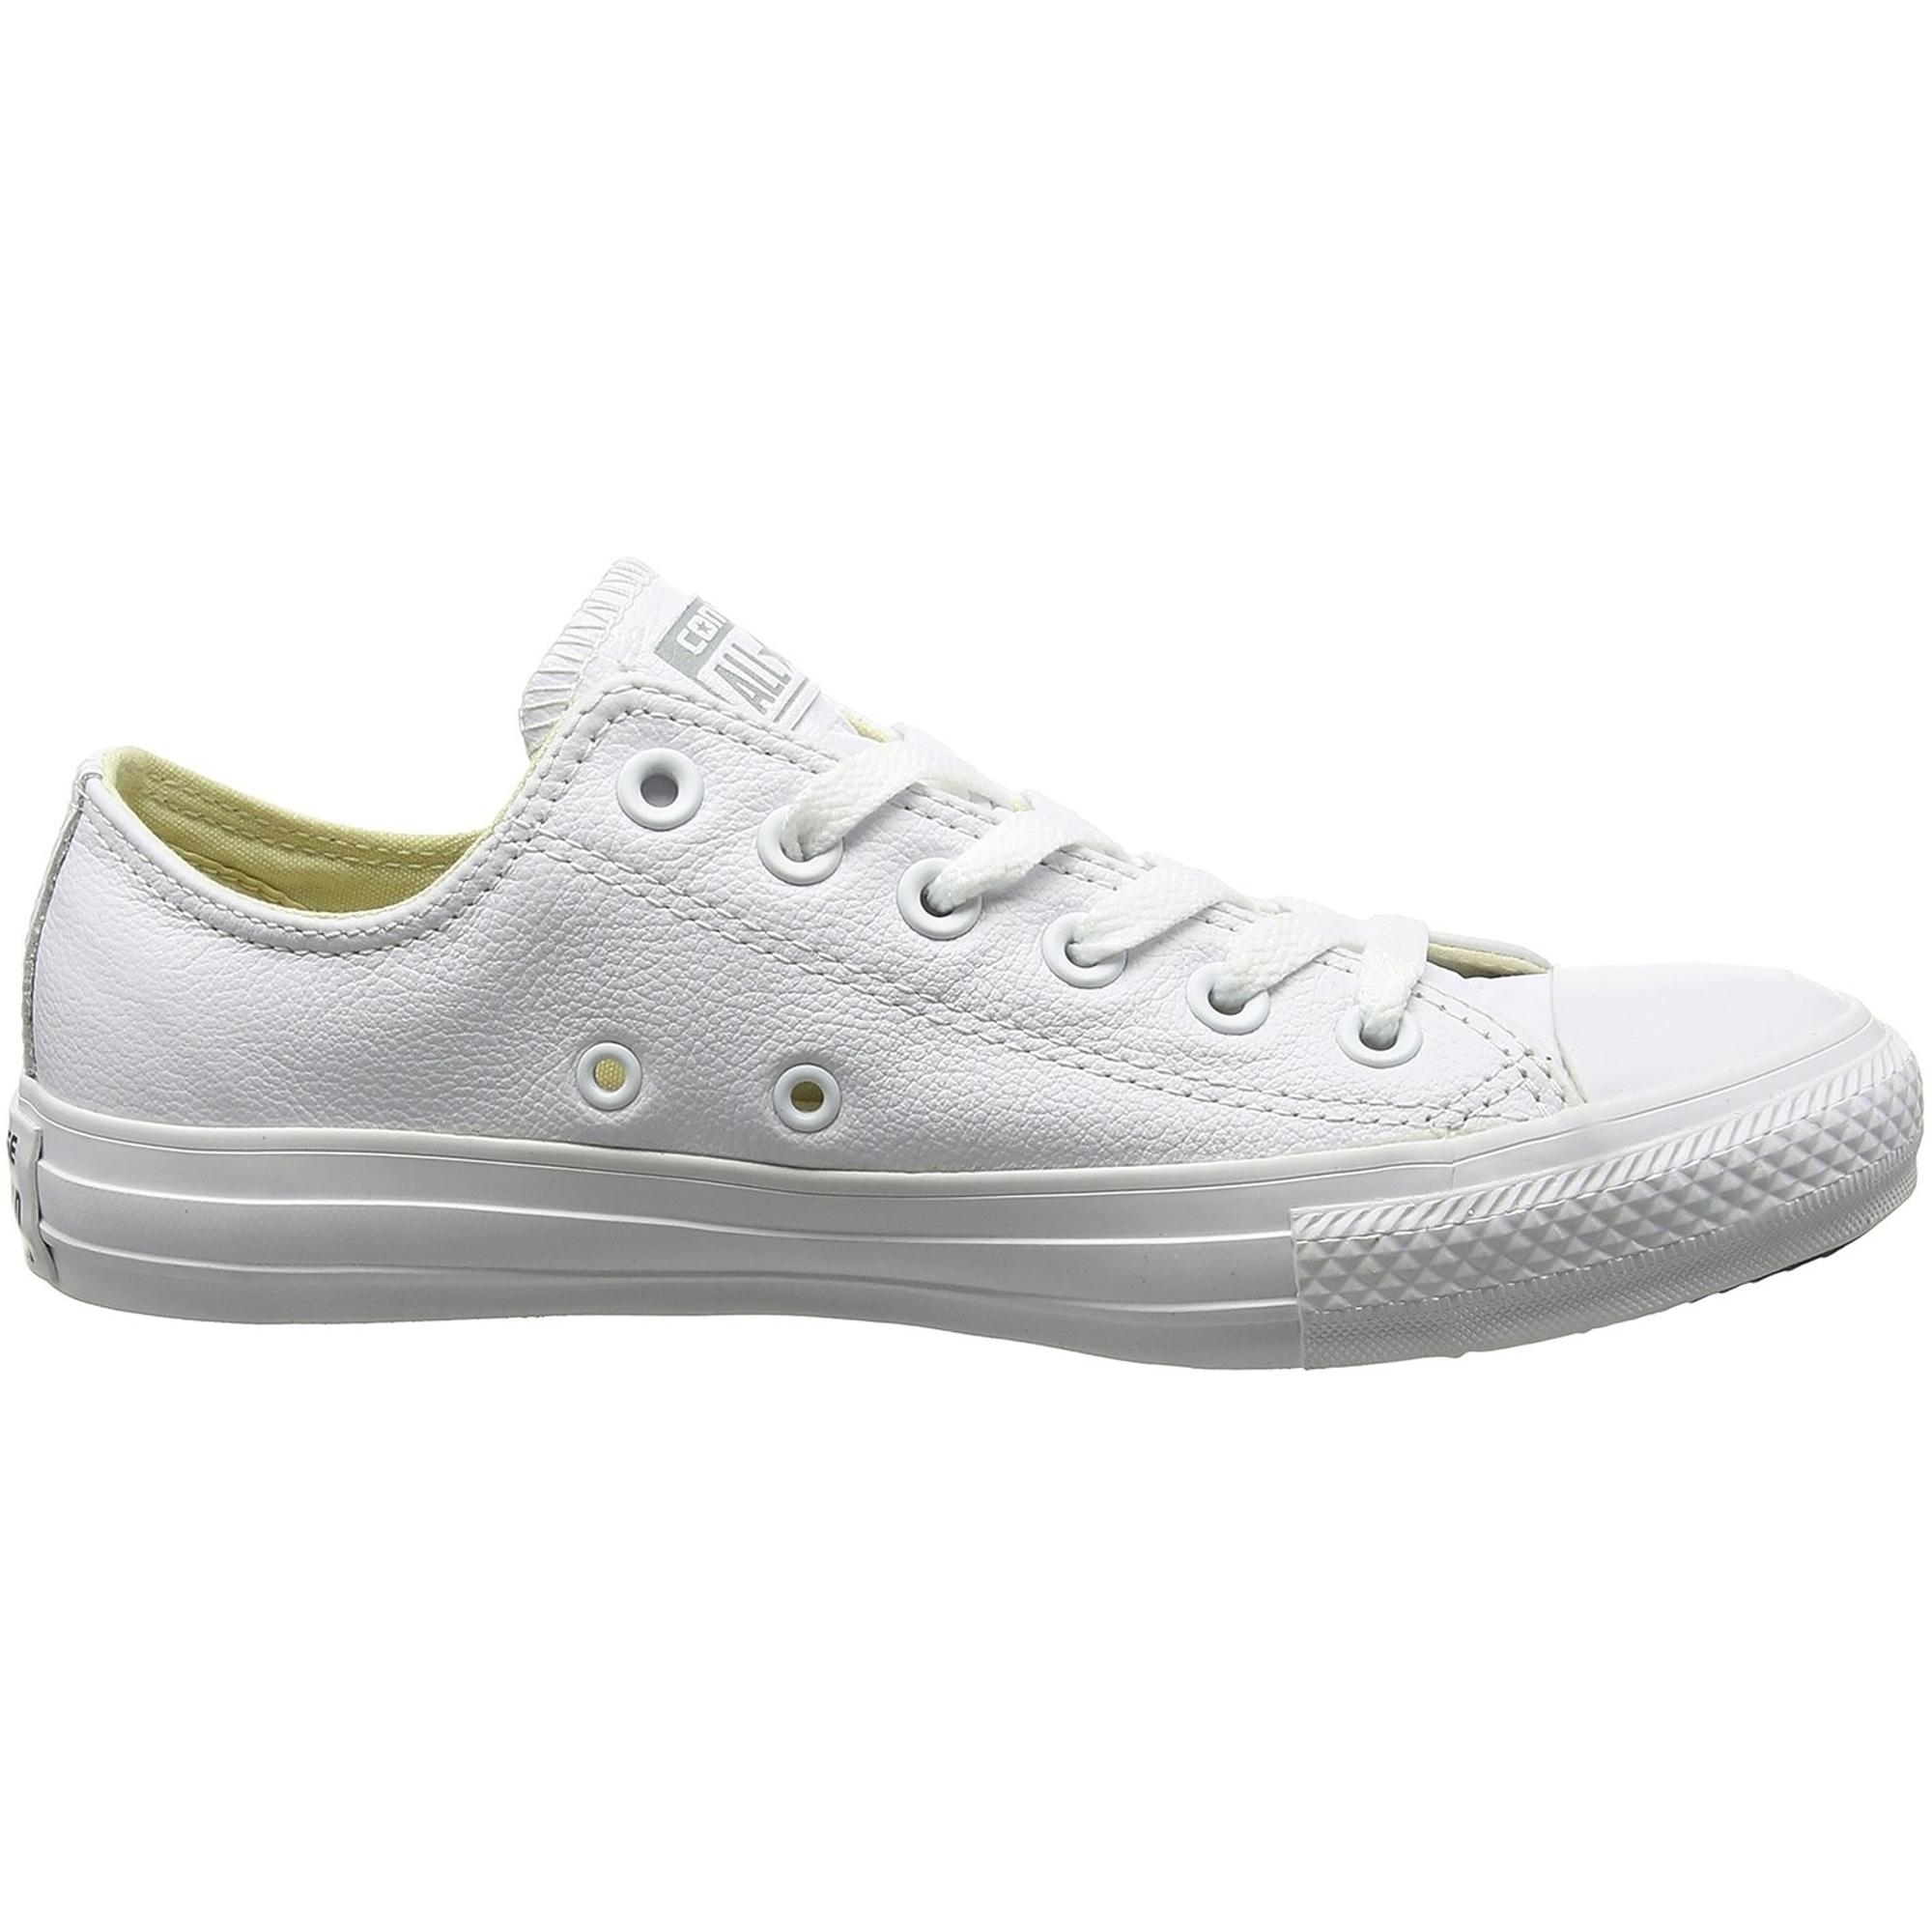 converse all star cuero zapatos 136823c blanco